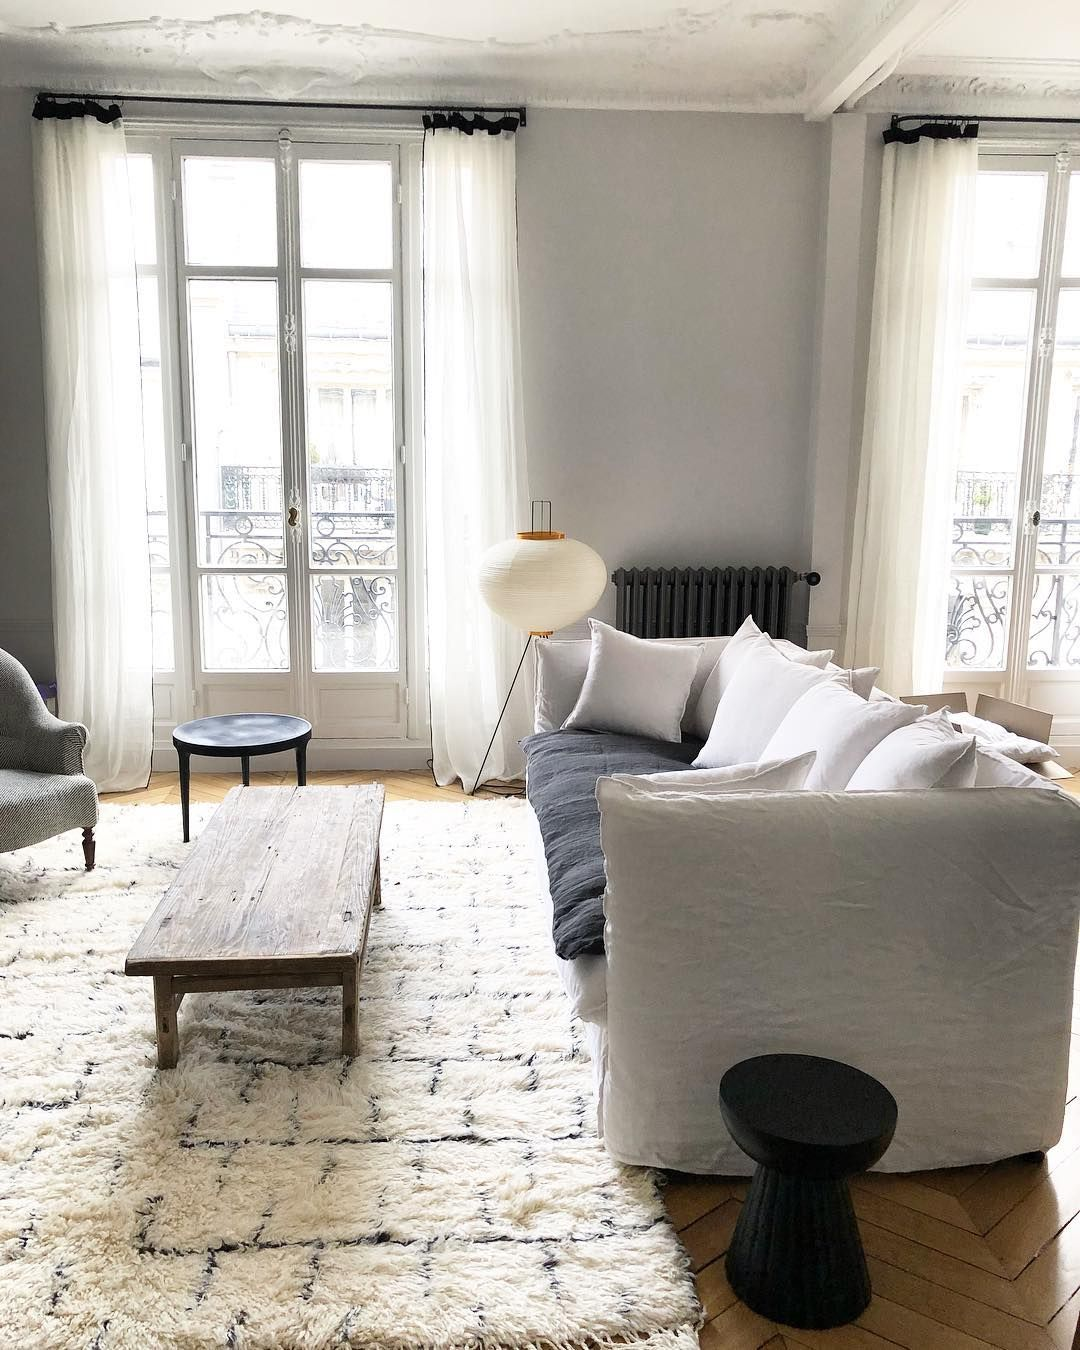 Victoria Douyere On Instagram Rue De Chartres Reception De Chantier Avec L Agence Caroline Andreoni Decor Agence Architecture Decoration Maison Maison